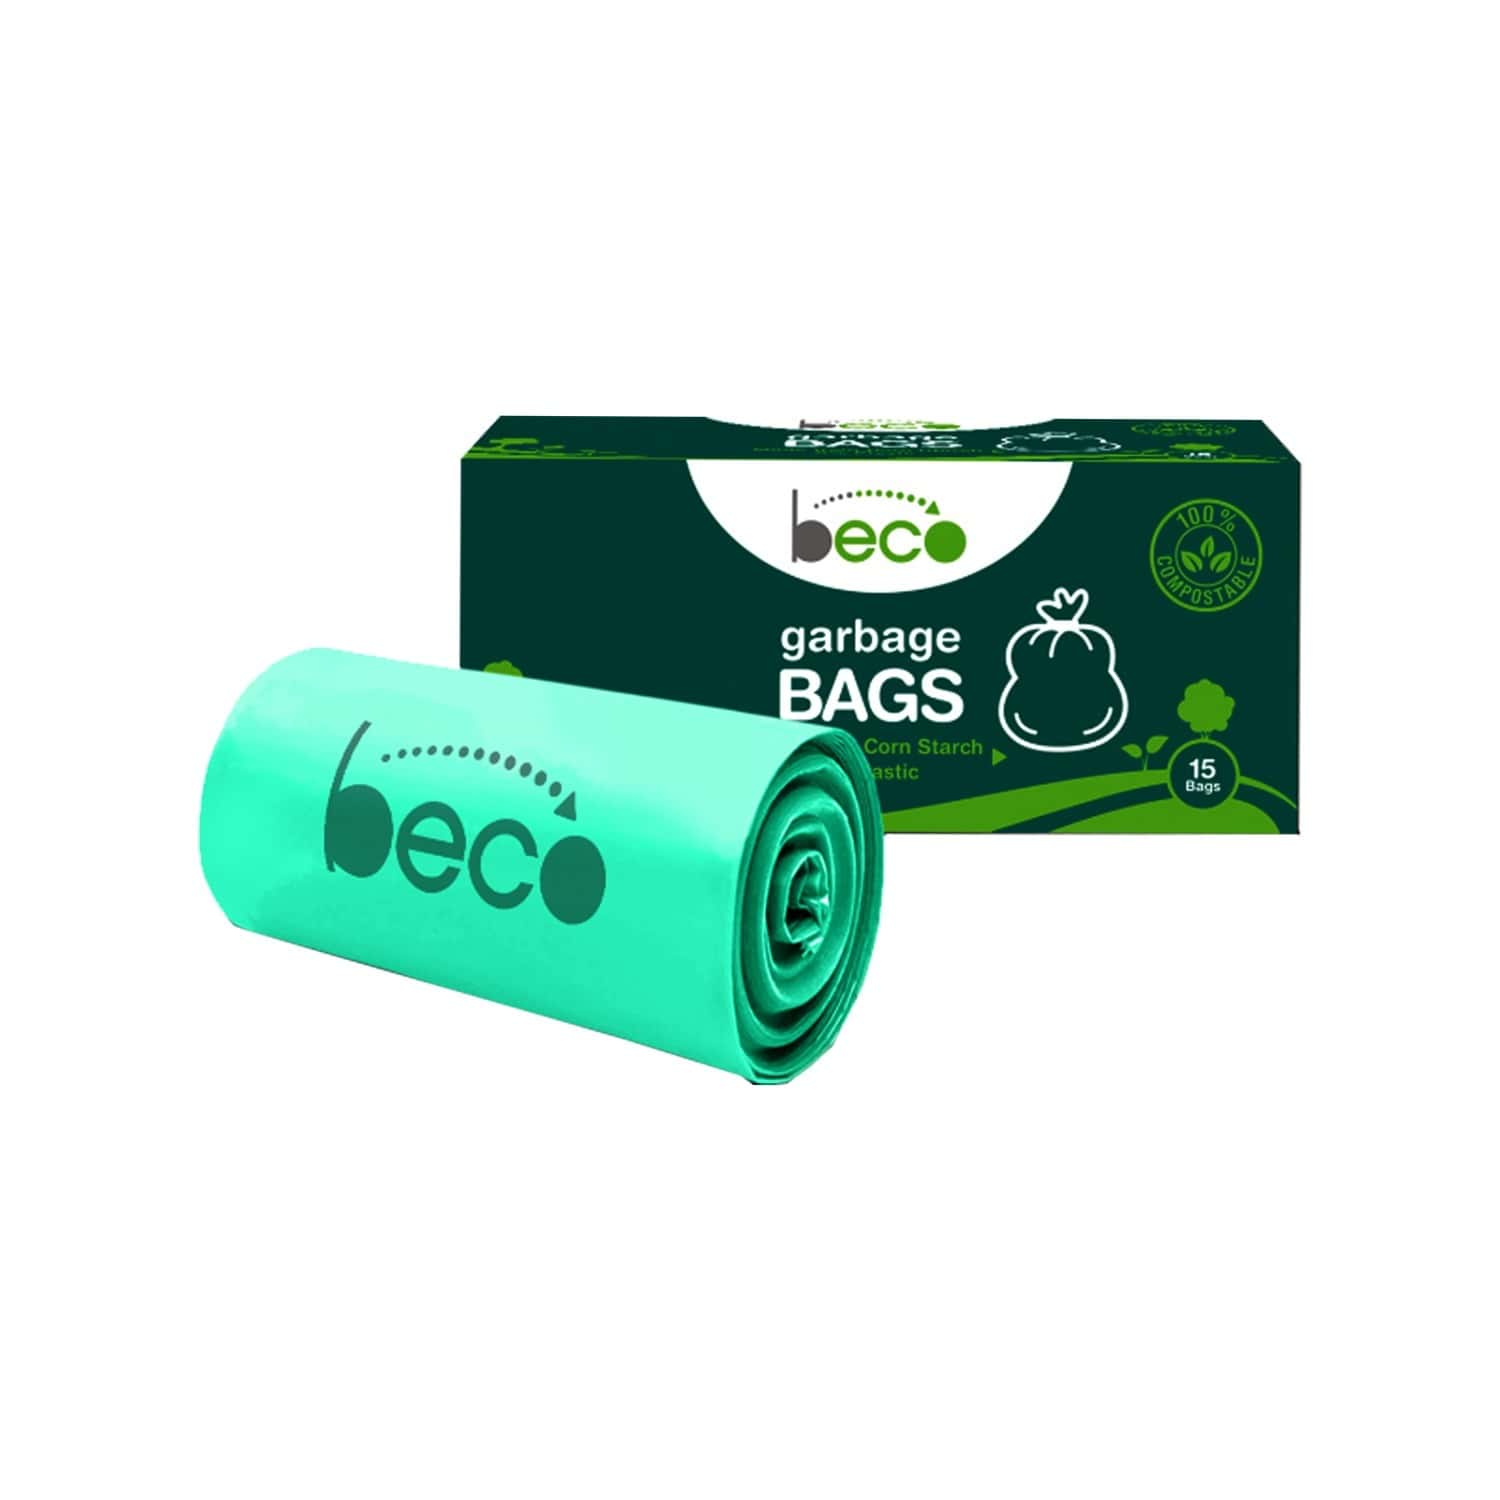 Beco Compostable Small 17 X 19 Inches Garbage Bags/trash Bags/dustbin Bags - 15 Pieces